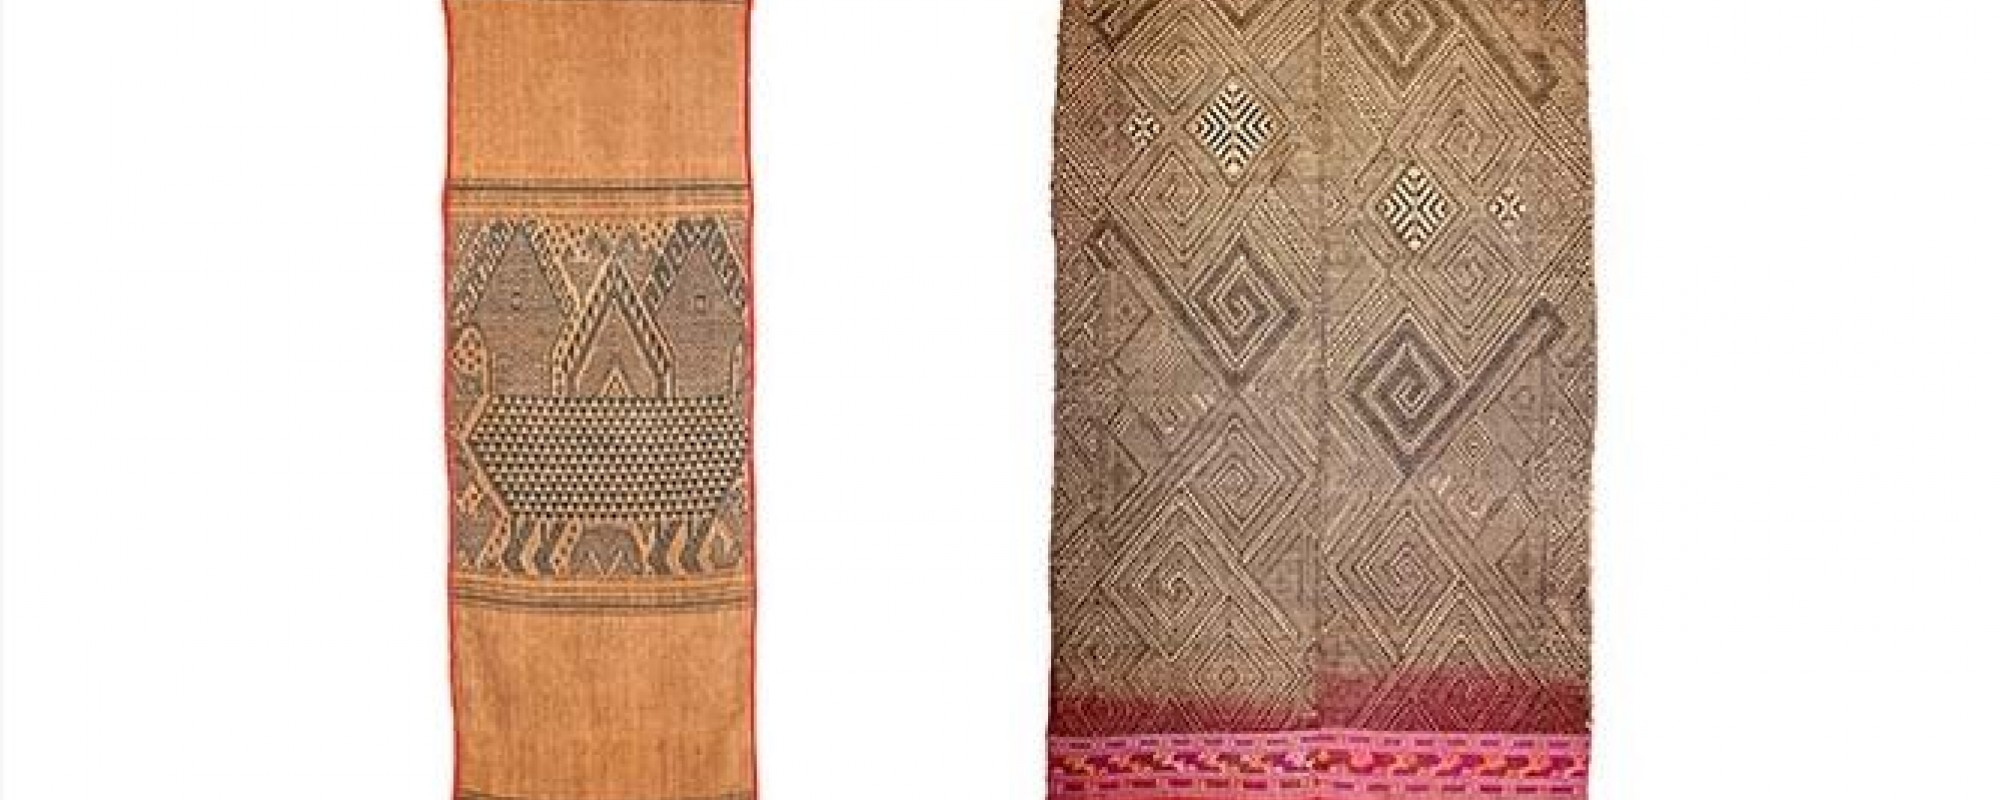 L: Buddhist sitting cloth (paa pua), 1920–1940. Laos, Xiangkhouang Province, Cotton; continuous supplementary-weft patterning. FAMSF, gift of Ellison Banks Findly, 2014.40.28. R: Wearing blanket (paa dtuum), 20th century. Laos, Tai Daeng. Cotton; continuous supplementary-weft patterning, painted warp. FAMSF, gift of Ellison Banks Findly, 2014.40.34